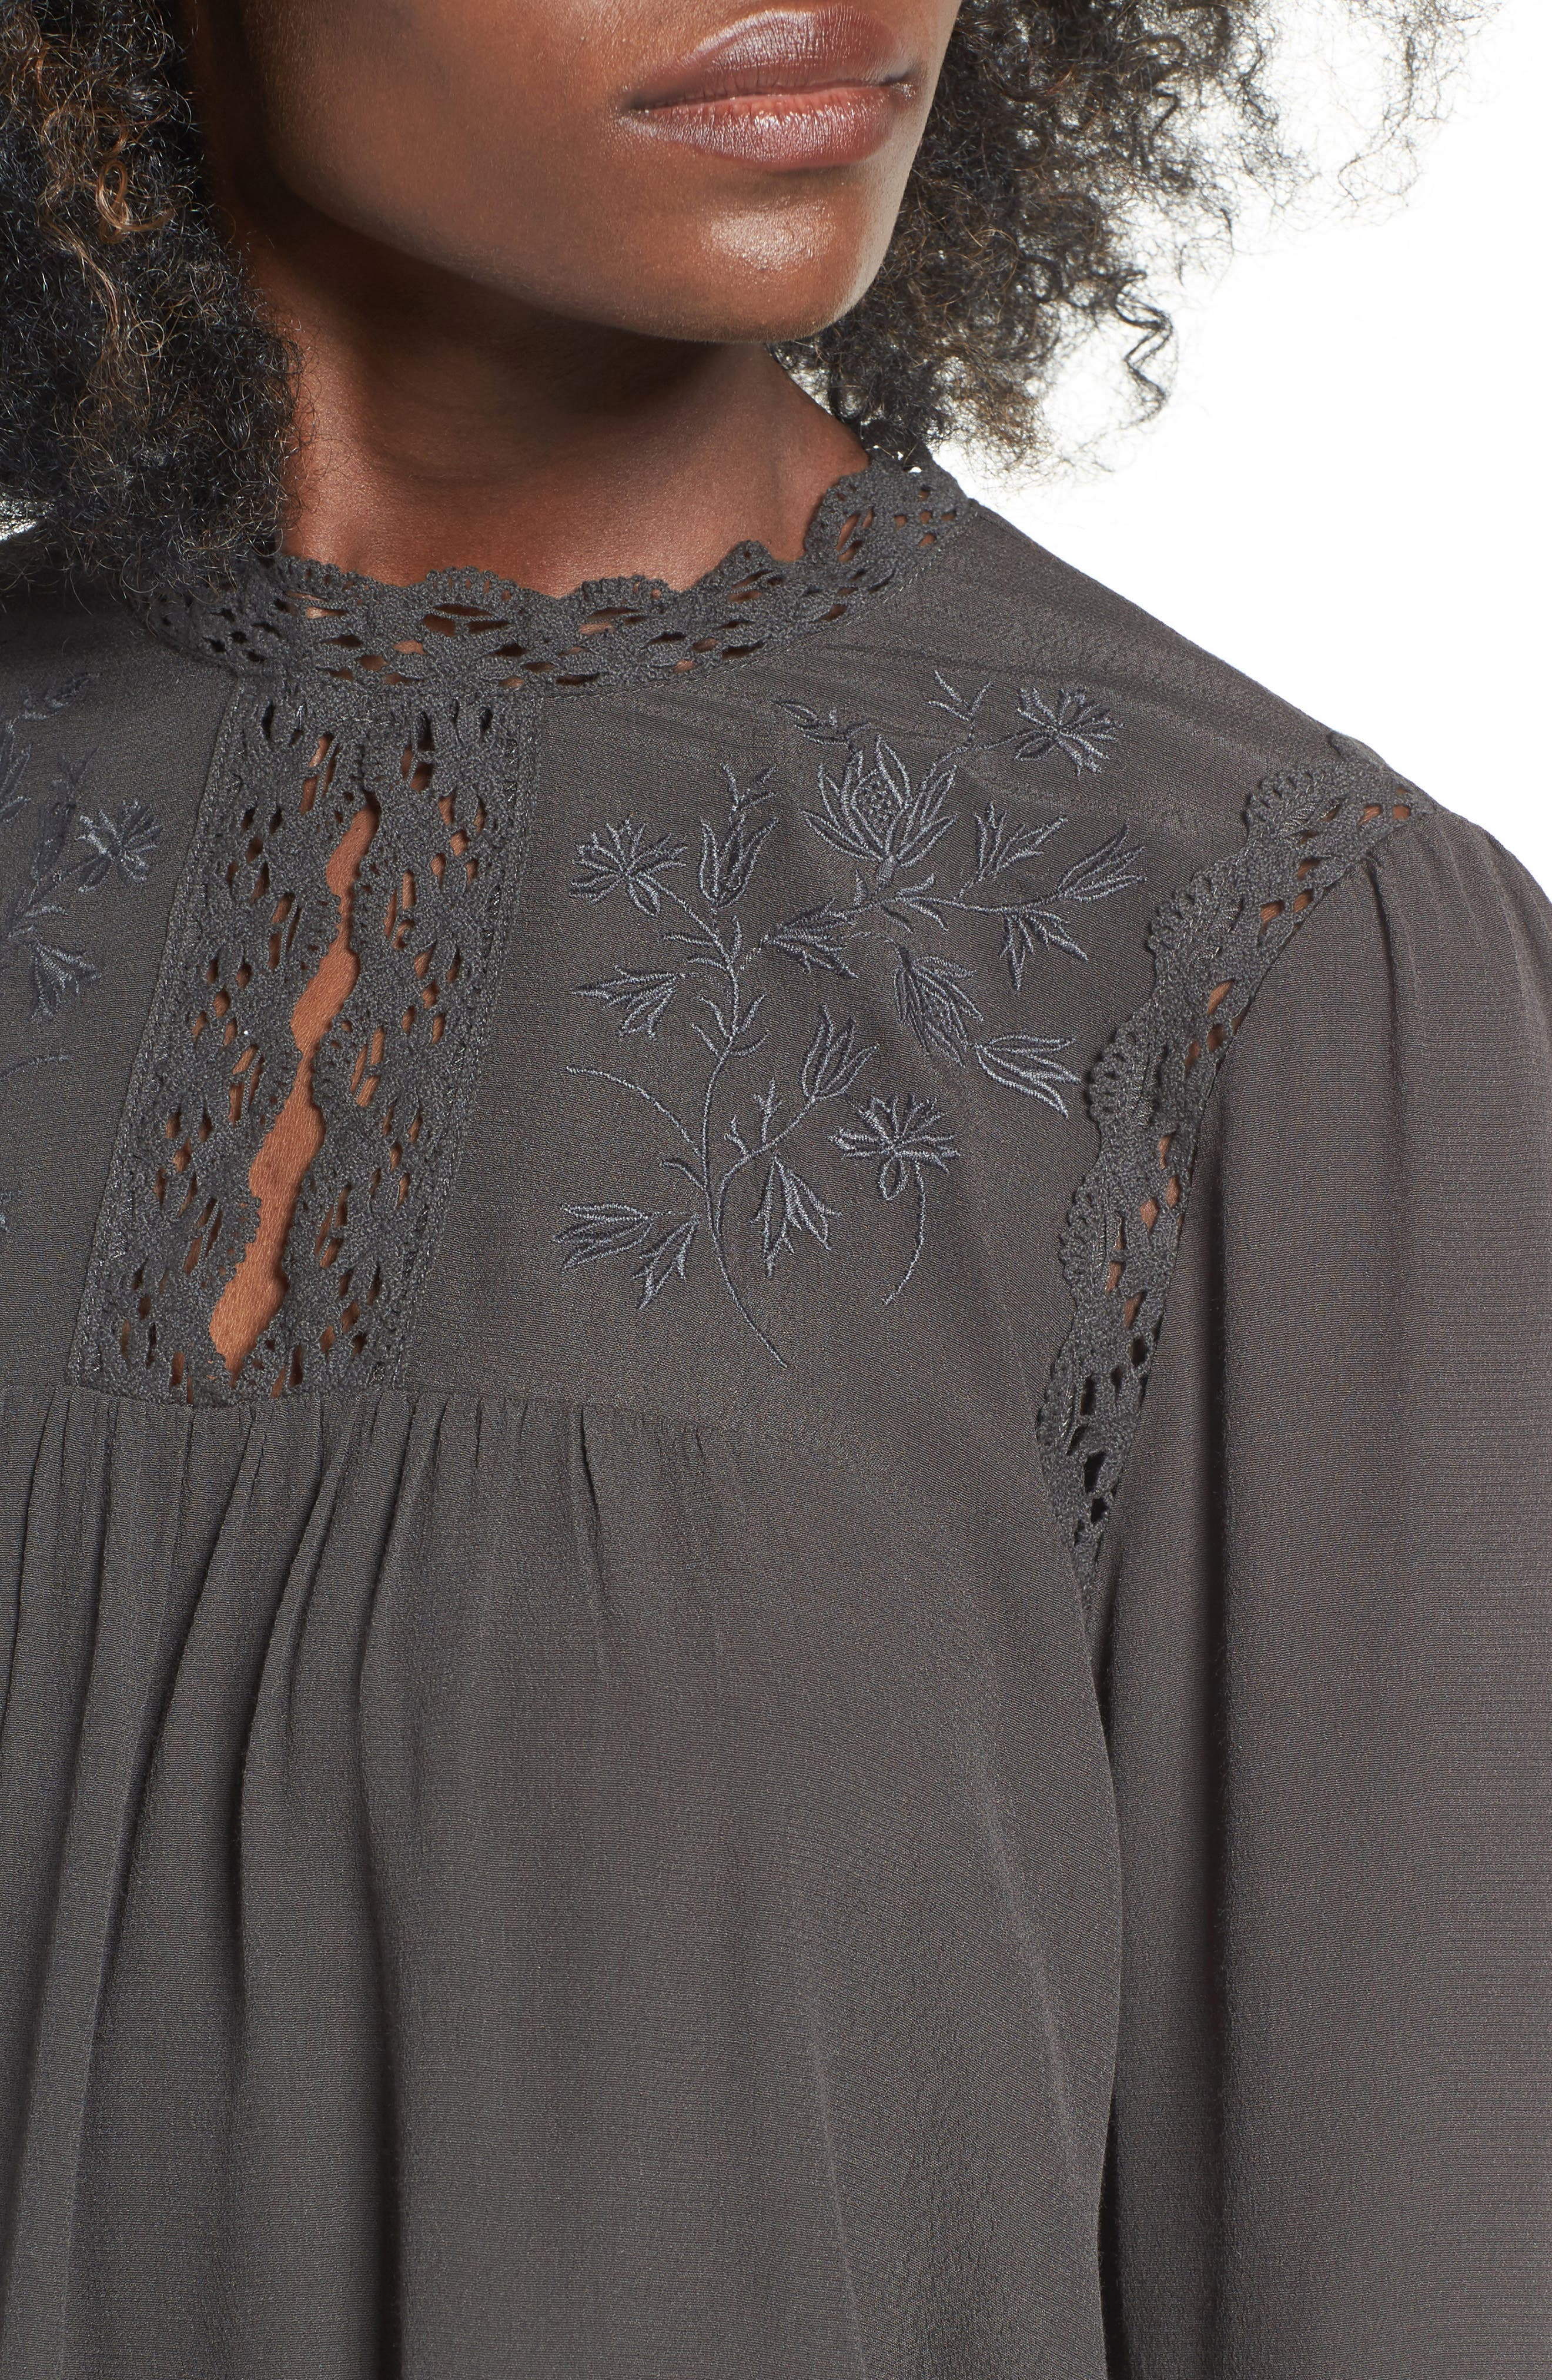 ASTR Embroidered Blouse,                             Alternate thumbnail 4, color,                             020